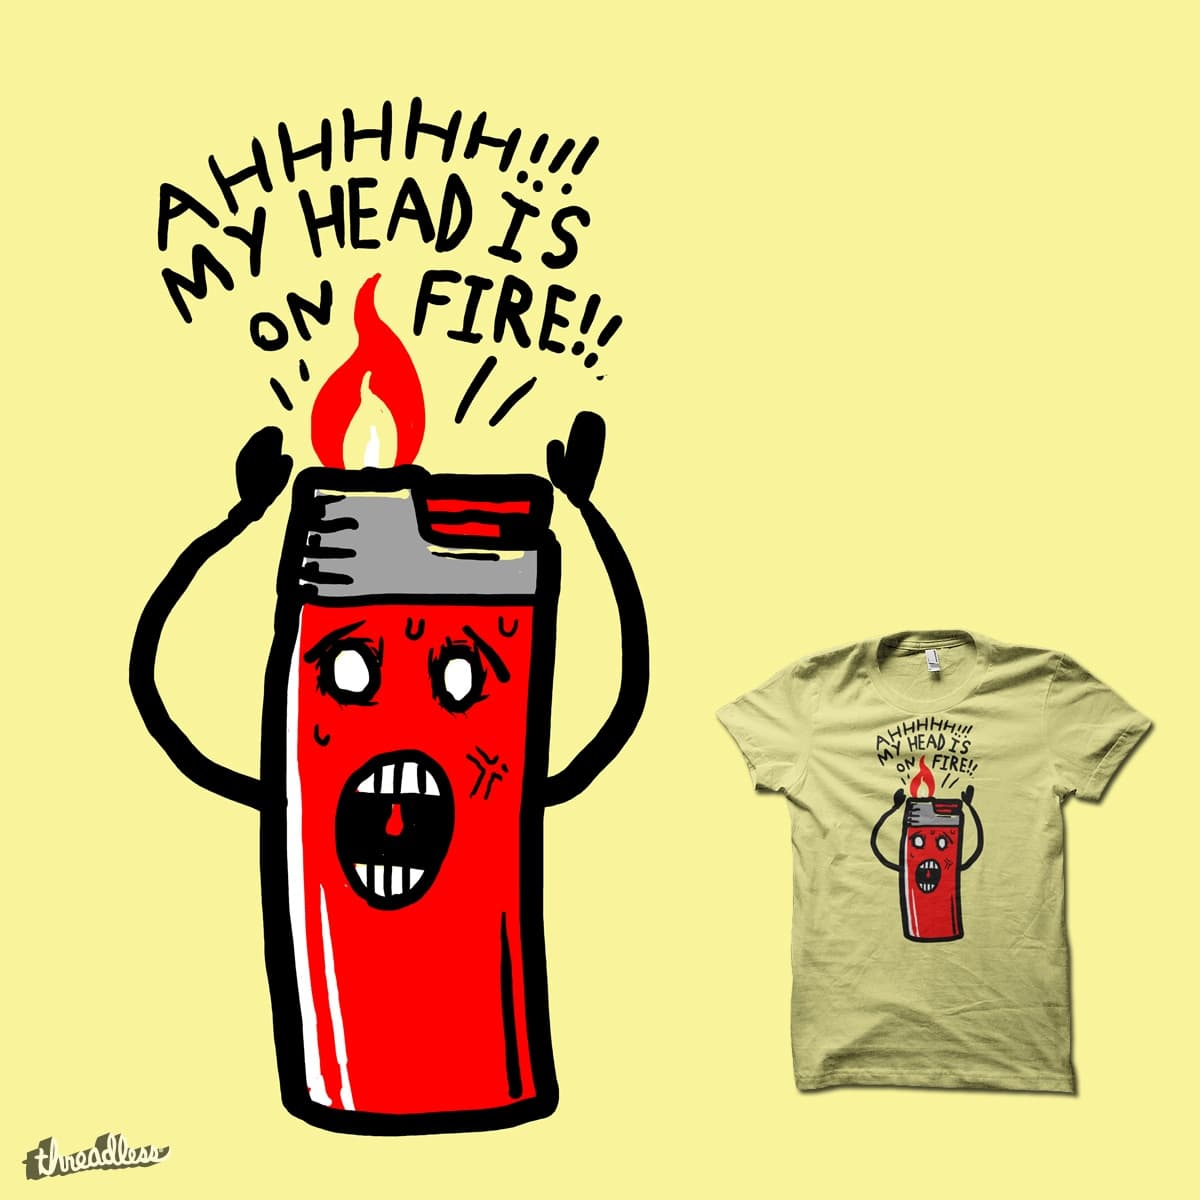 My Head Is On Fire by biotwist on Threadless